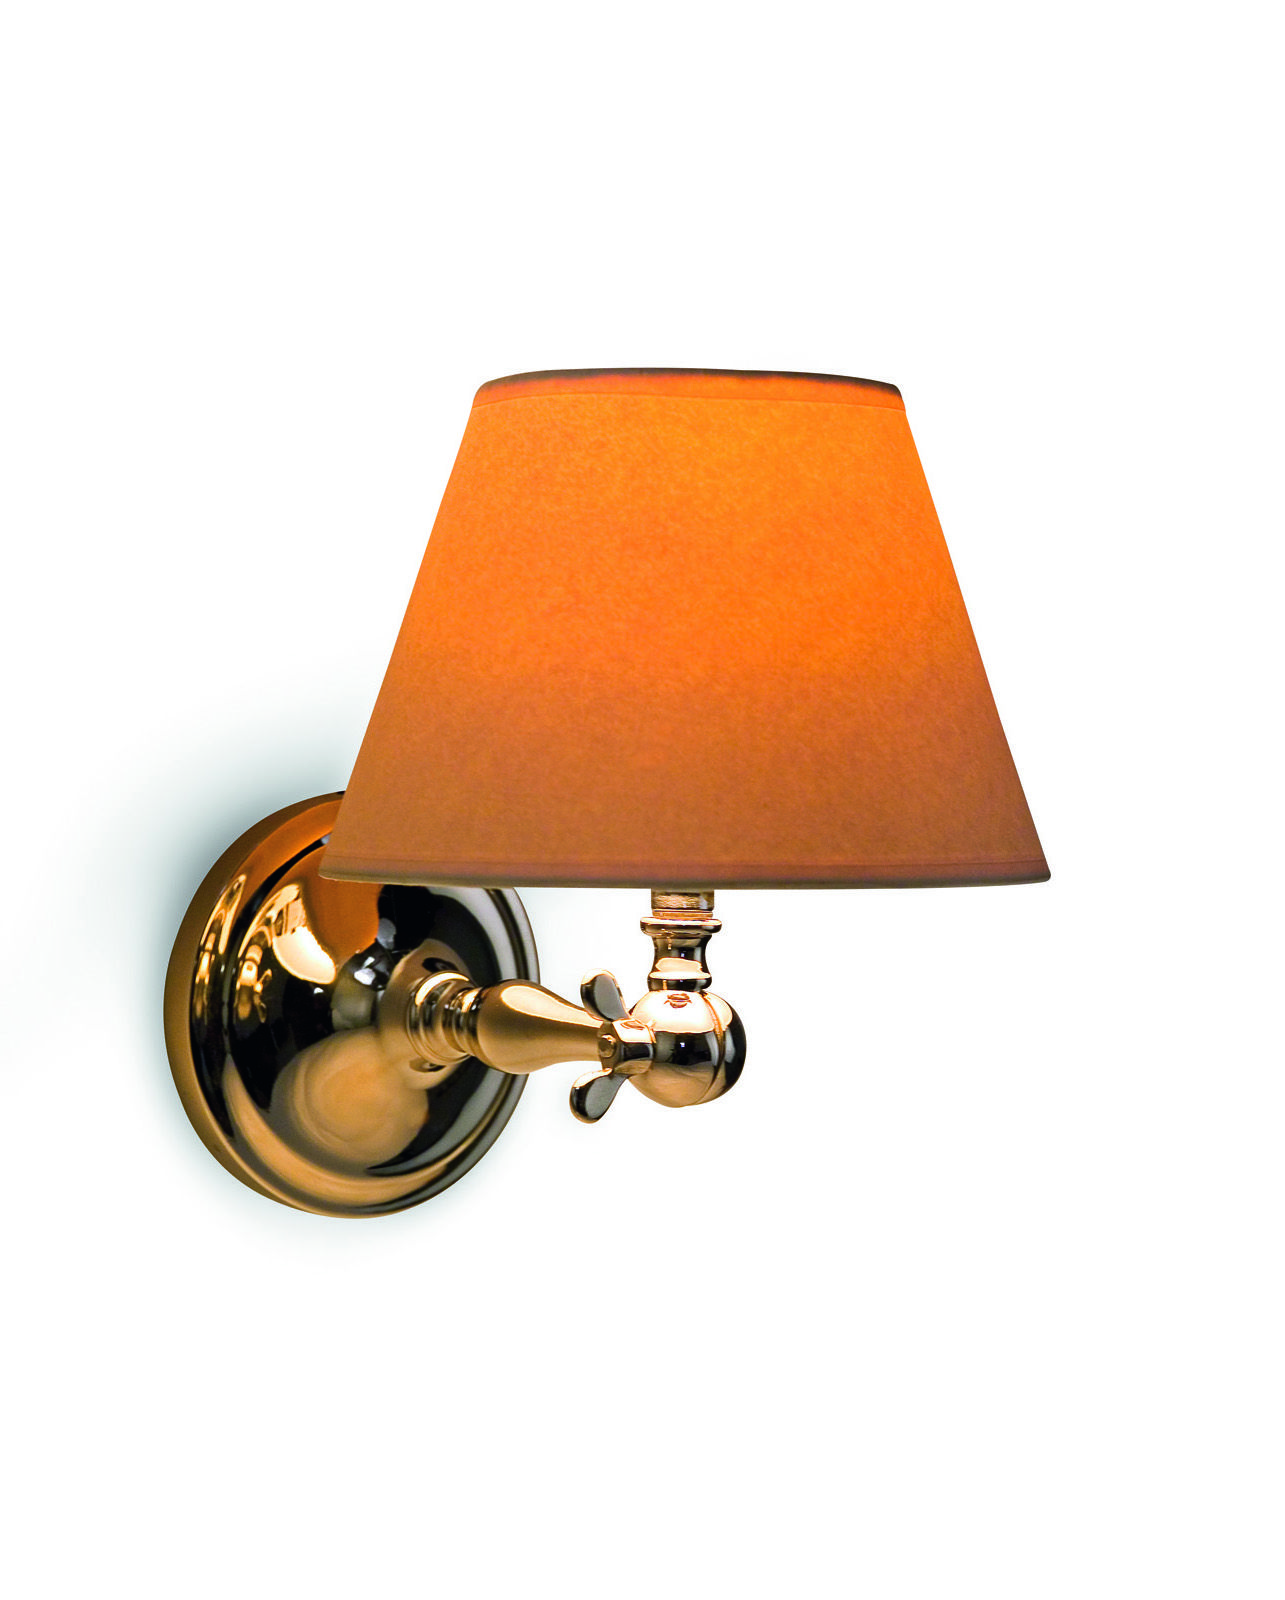 The Baluster Wall Light Ispired By A 19th Century Design Is Made In Solid Brass With A Butterfly Screw Allowing The Wall Lights Light Soane Britain